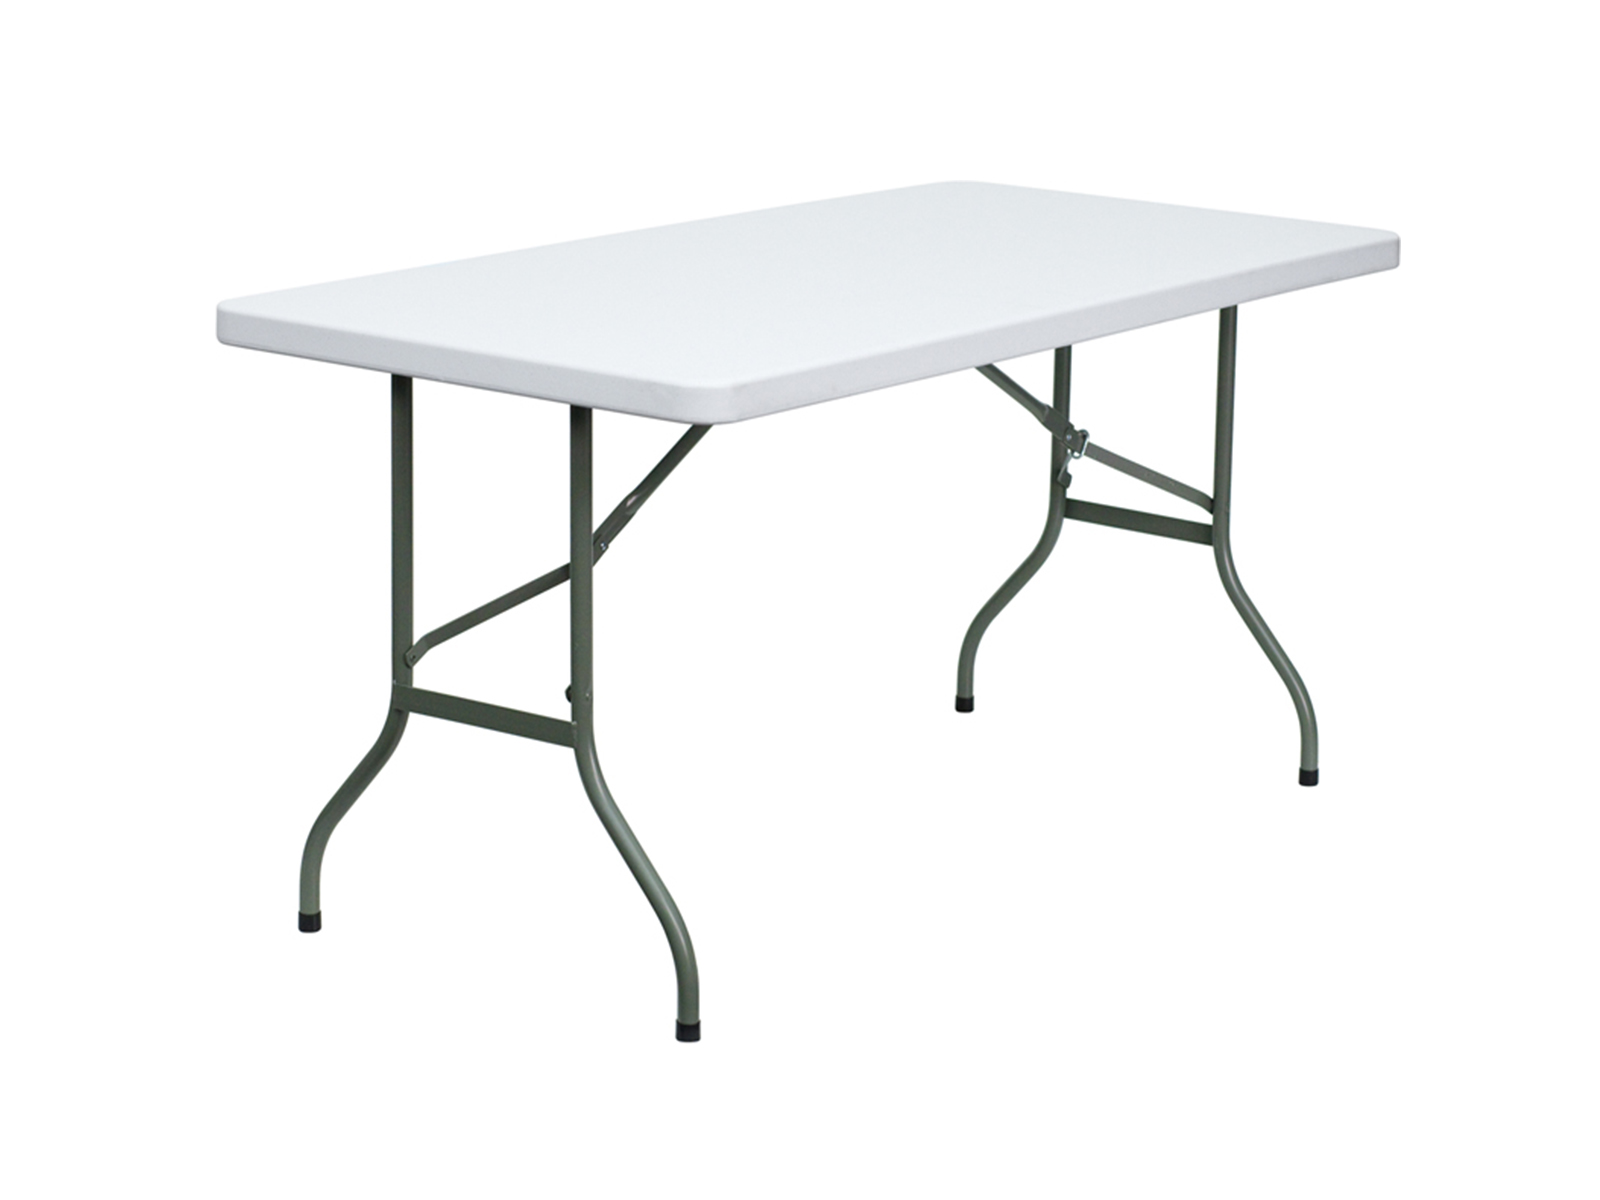 5' Granite White Plastic Folding Table